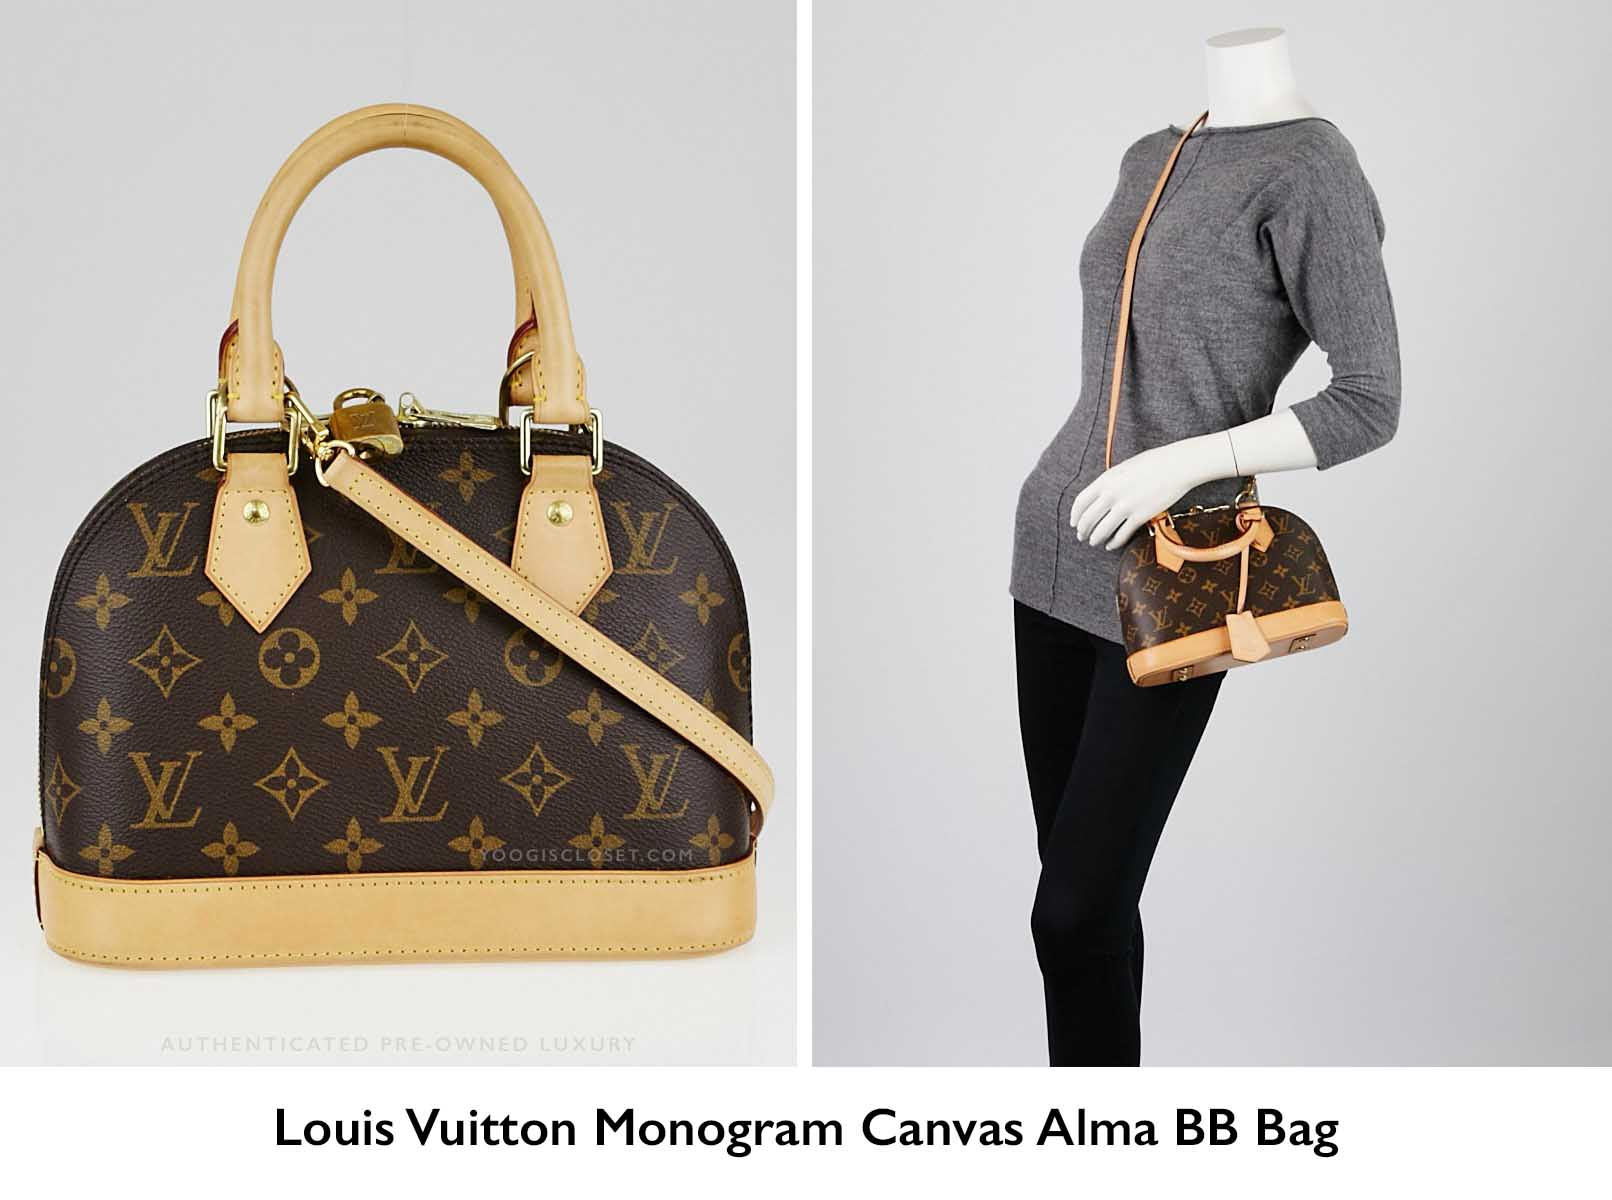 73ed0c75220a 15 Most Popular Louis Vuitton Monogram Small Crossbody Bags ...